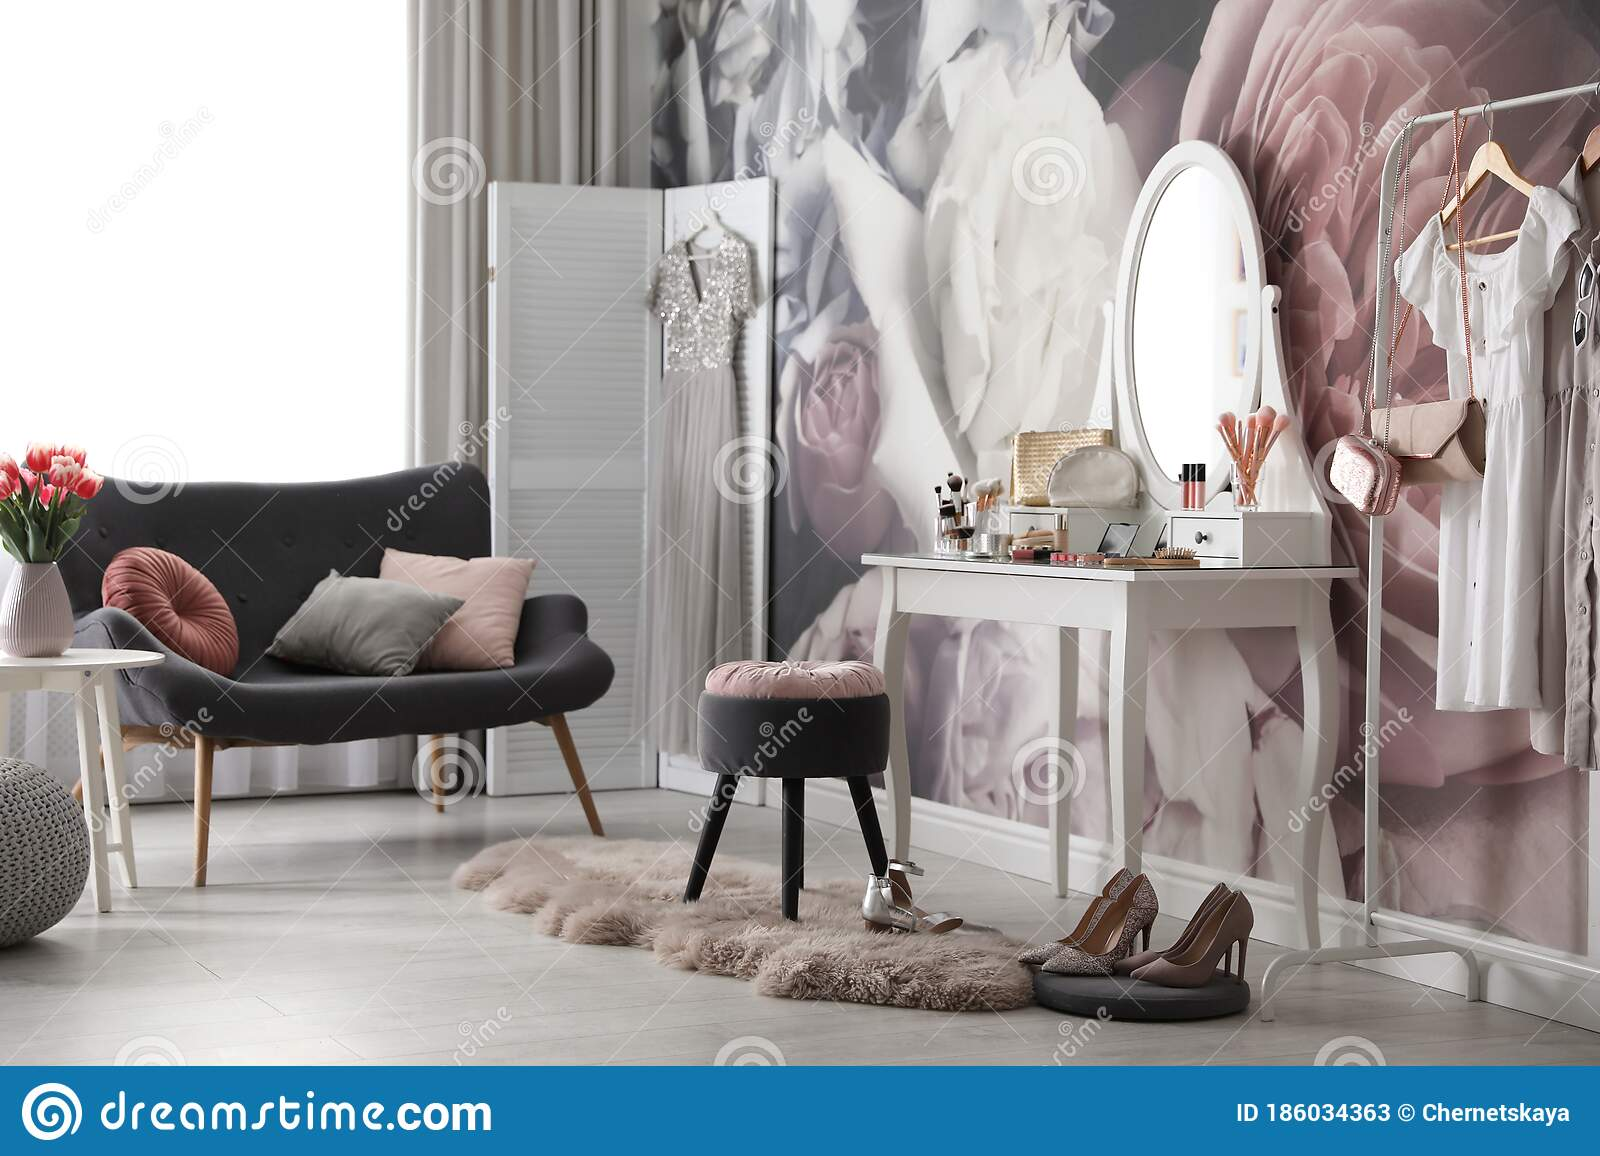 Room Interior With Elegant Dressing Table, Sofa And Floral